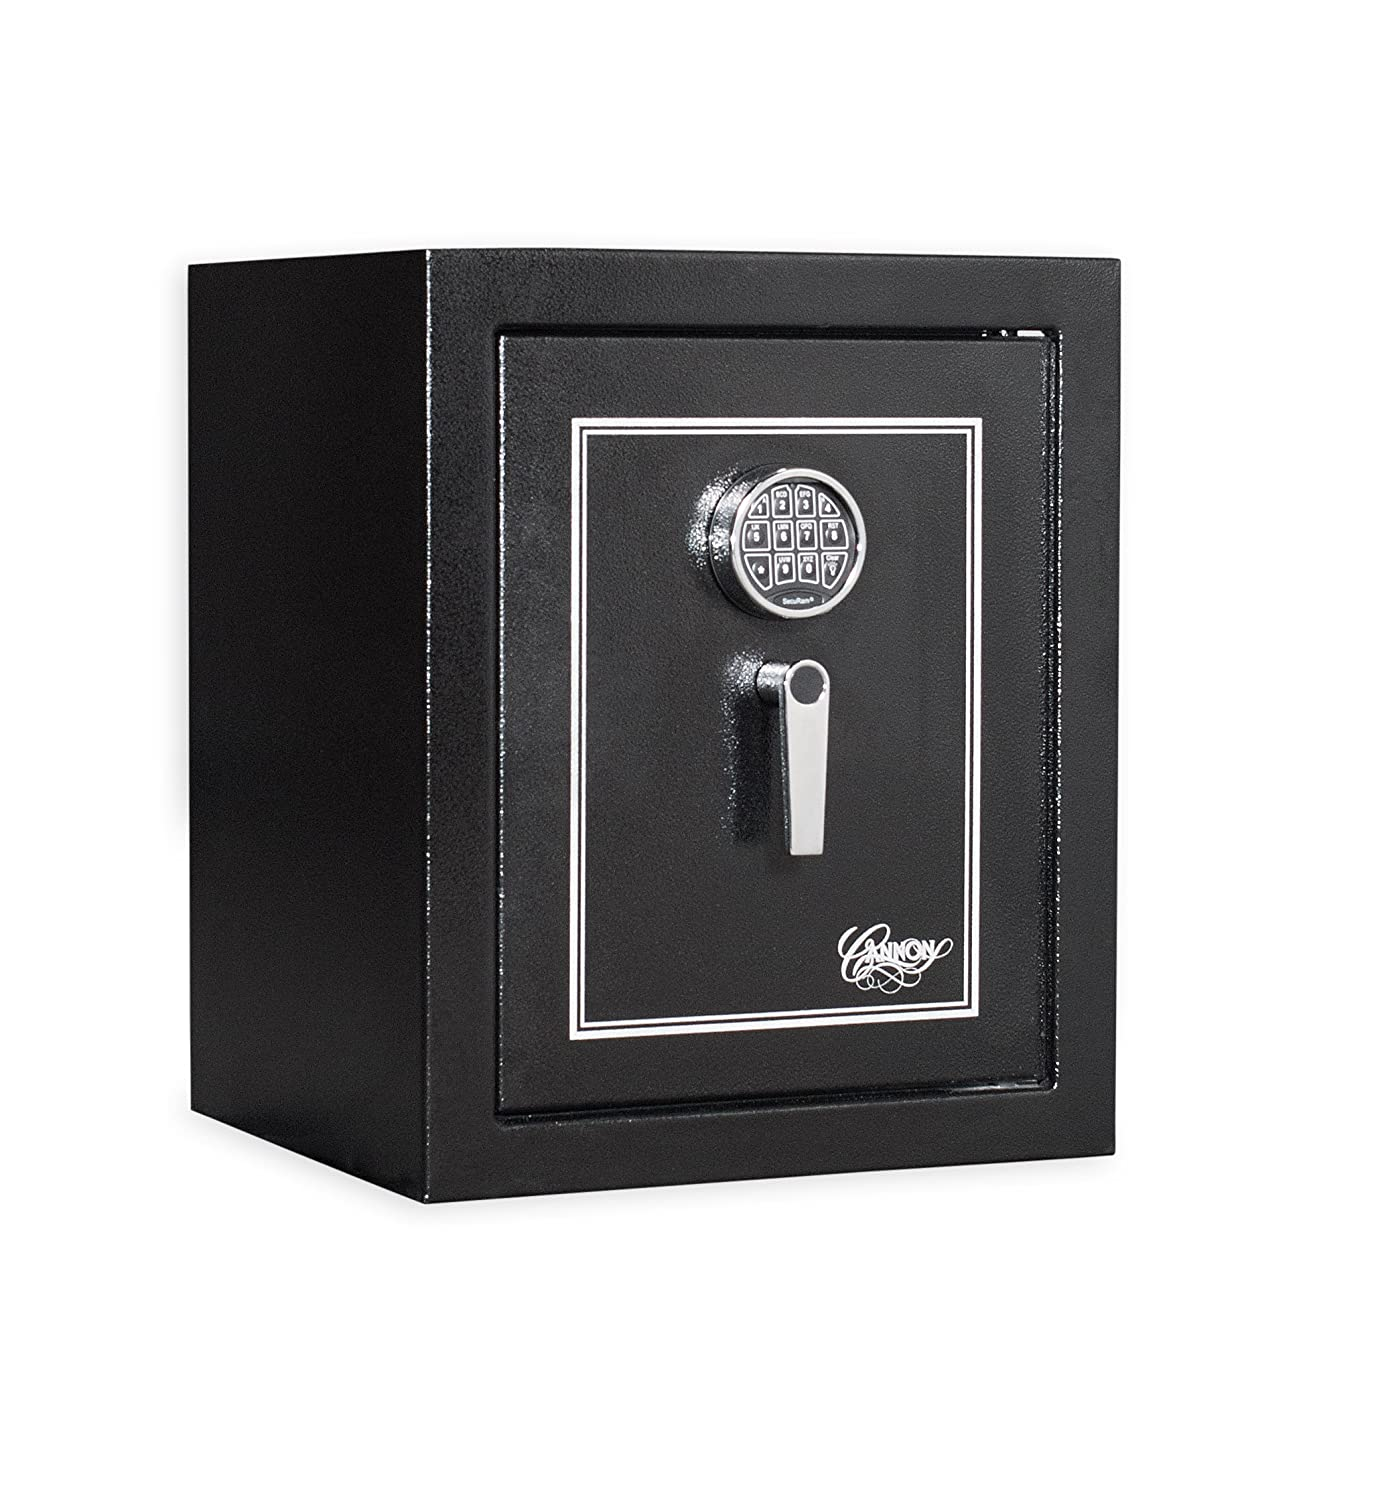 Cannon Safe H4-H1HEC-13 Home Guard Series Safe